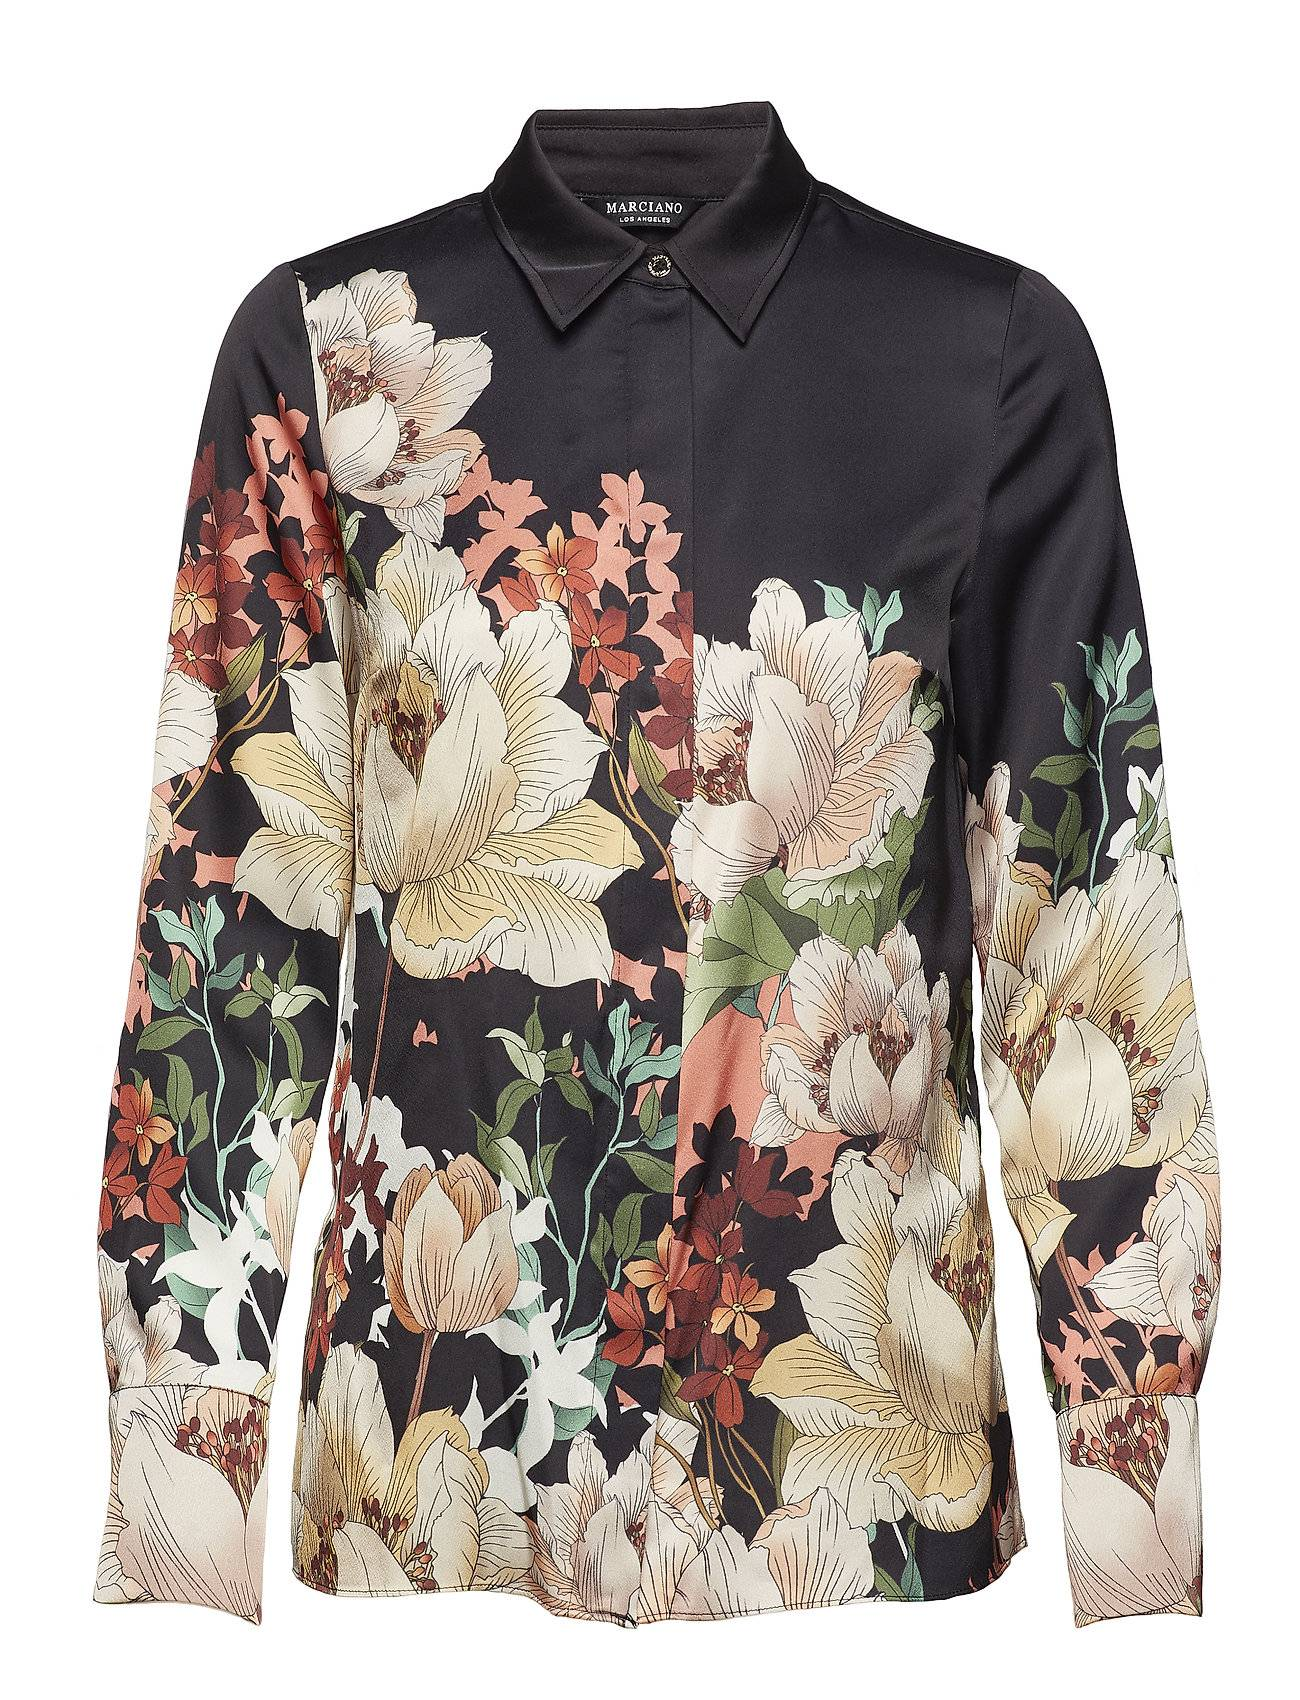 Marciano by GUESS Floral Lush Shirt